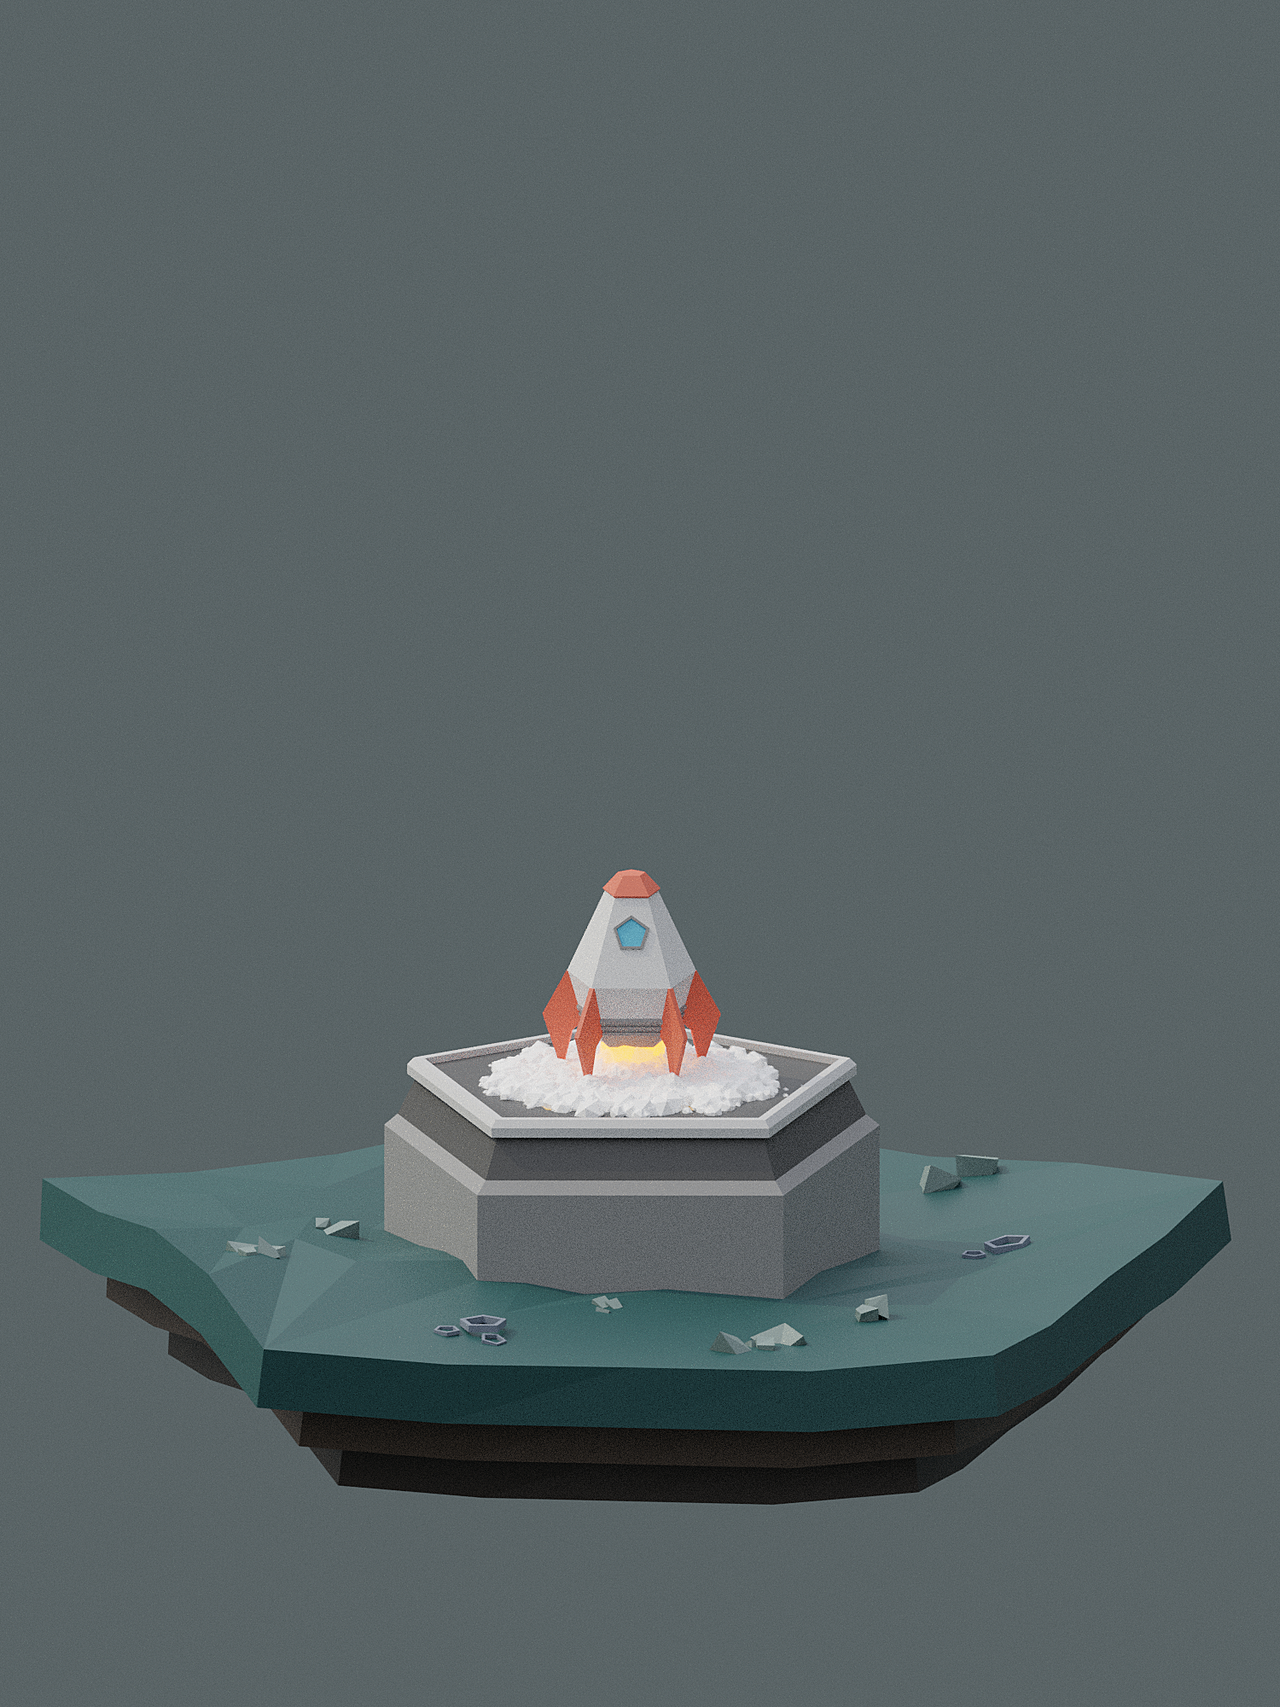 Low Poly Rocket Launch